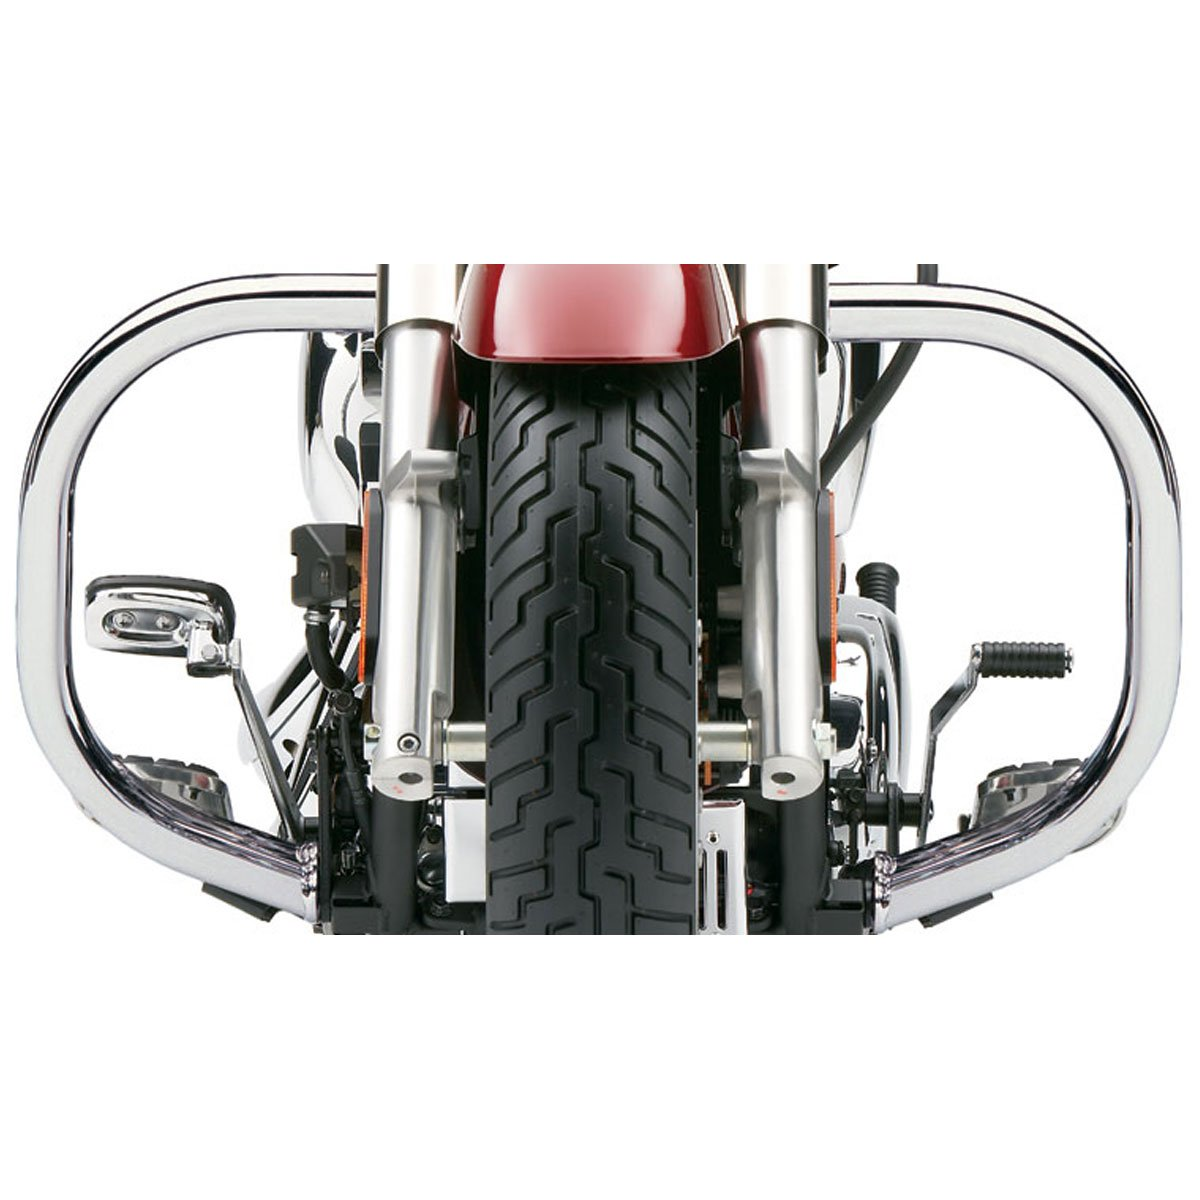 Cobra Fatty Freeway Bars for Yamaha Stratoliner/Roadliner 2006-2011, Raider 200 Cobra Boulevard